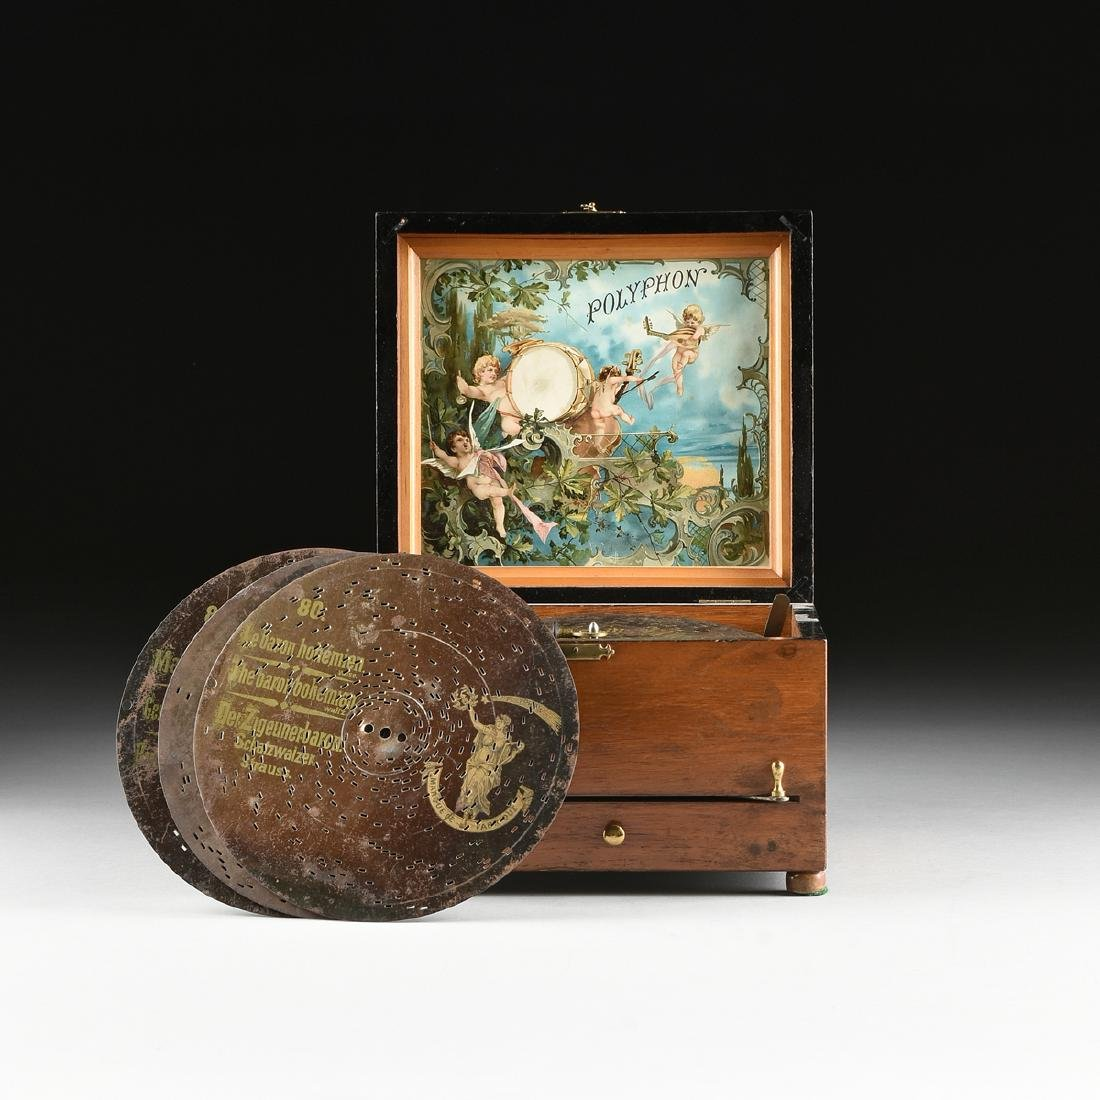 A GERMAN POLYPHON SINGLE COMB MUSIC DISC AND BELL BOX,